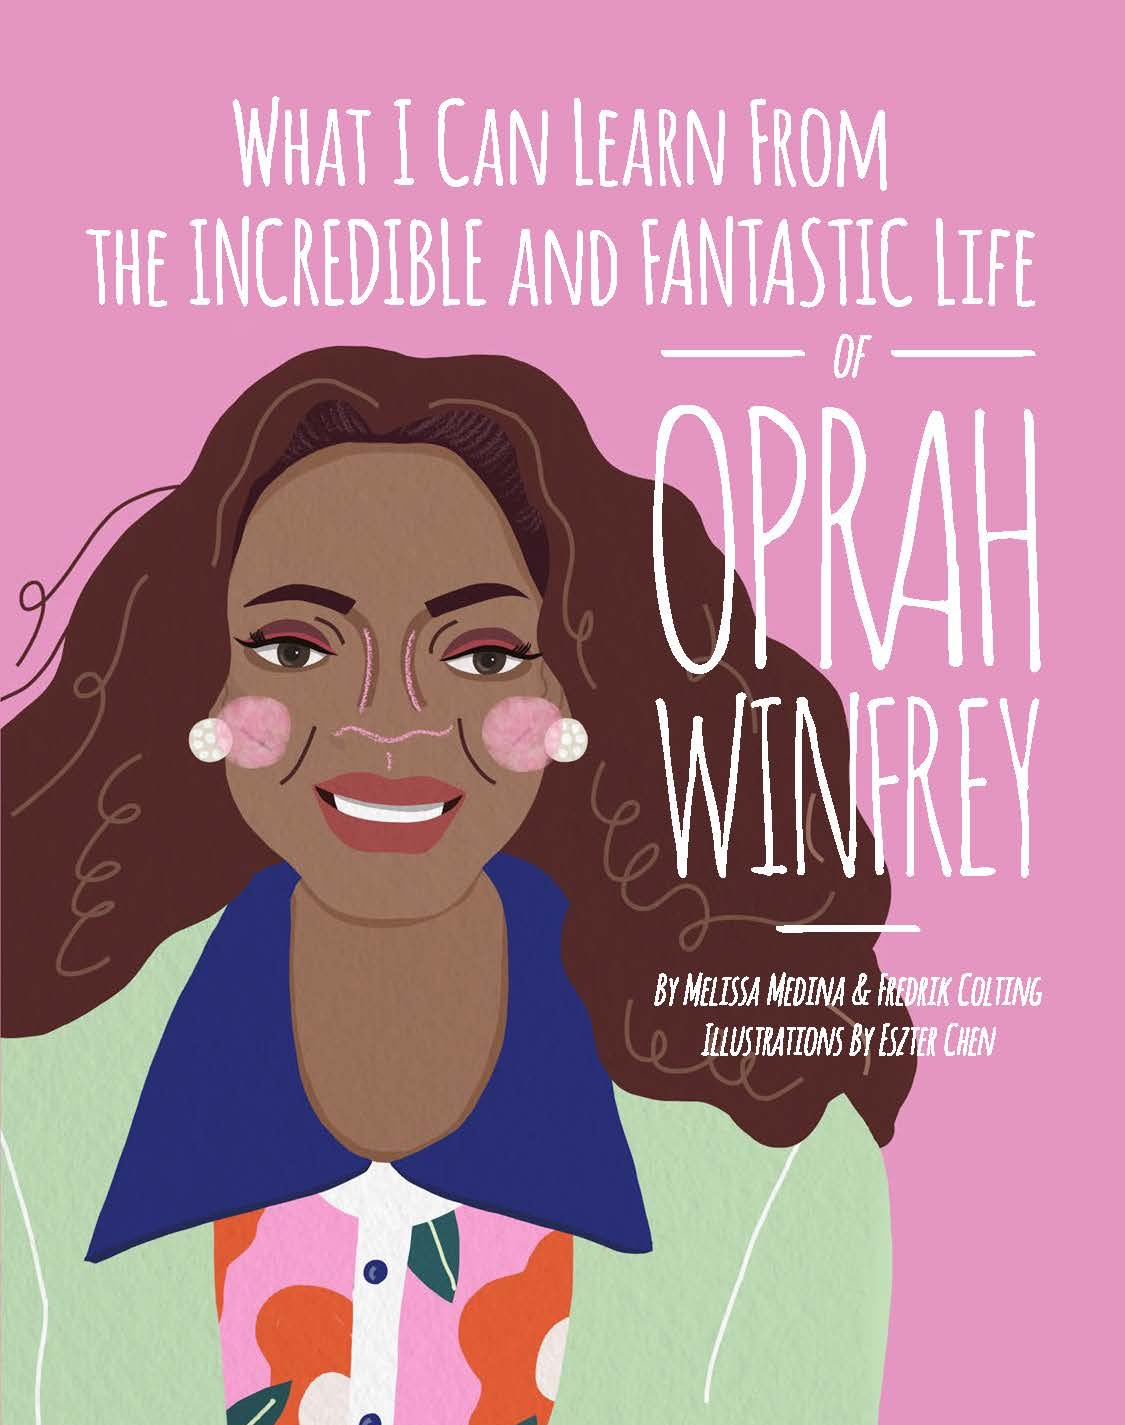 What I Can Learn from the Incredible and Fantastic Life of Oprah Winfrey